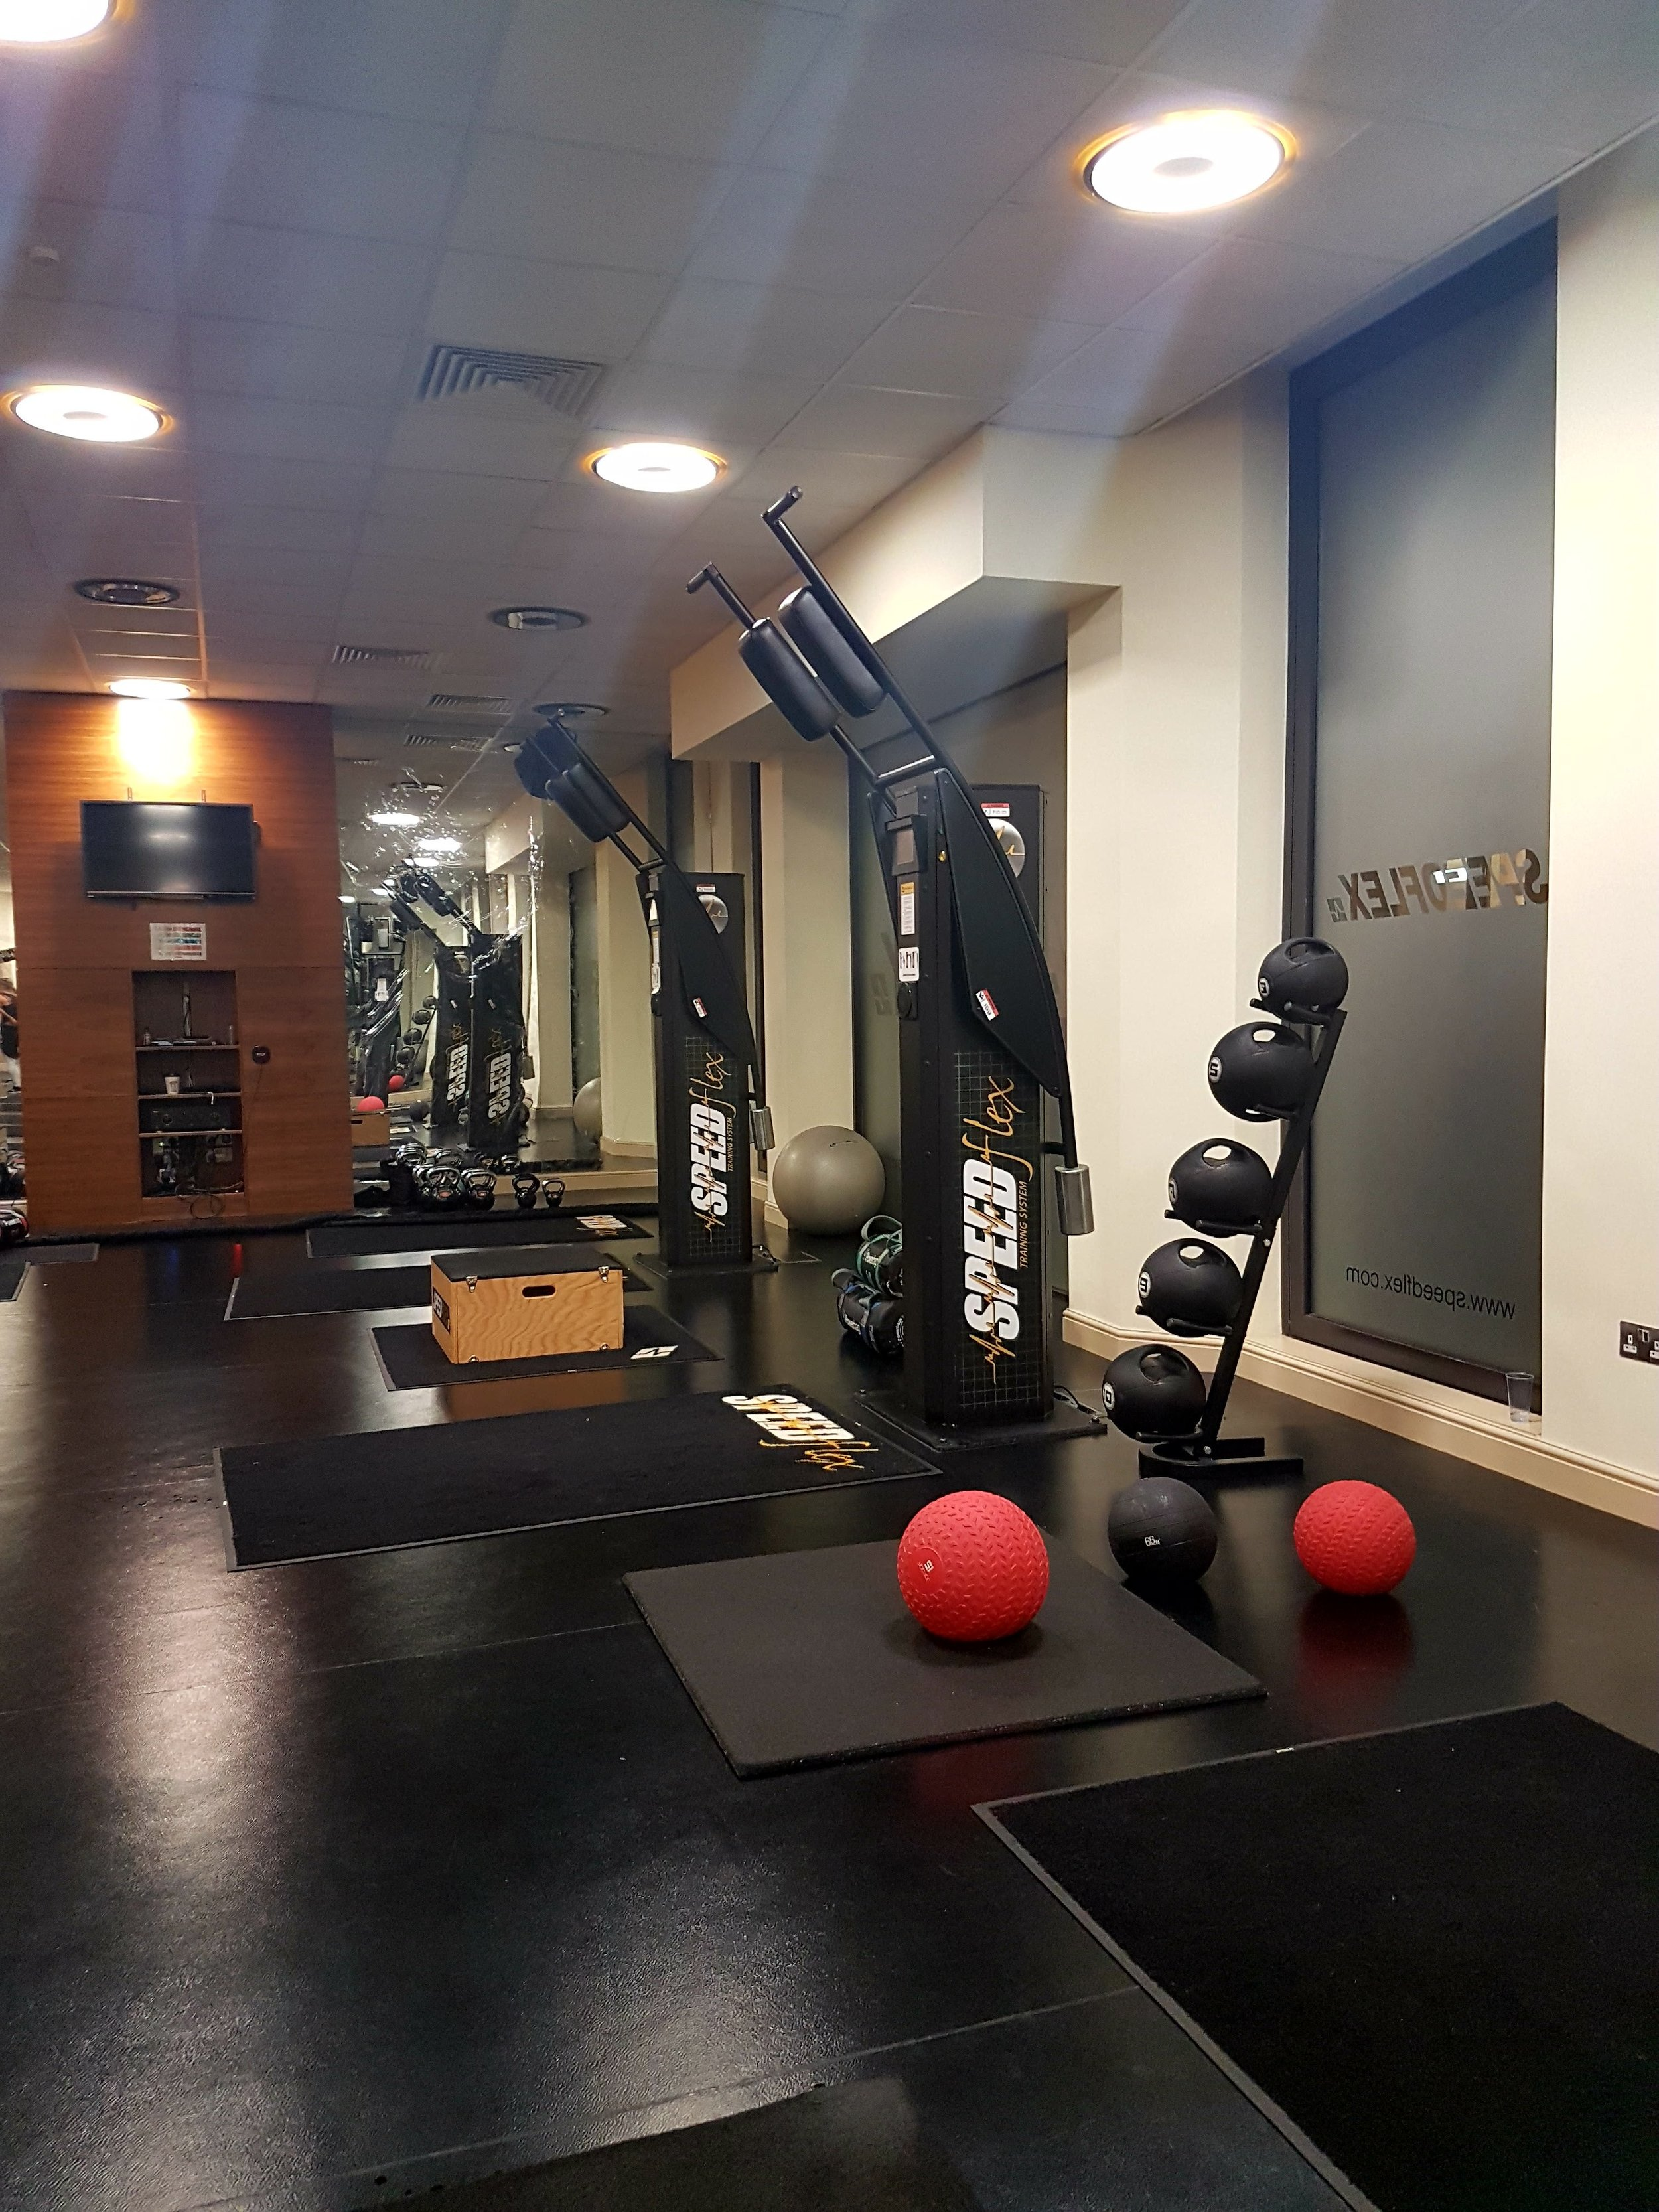 Speedflex sessions include movements on the Speedflex machines, step-ups, battle-ropes, kettle bells and wall balls.